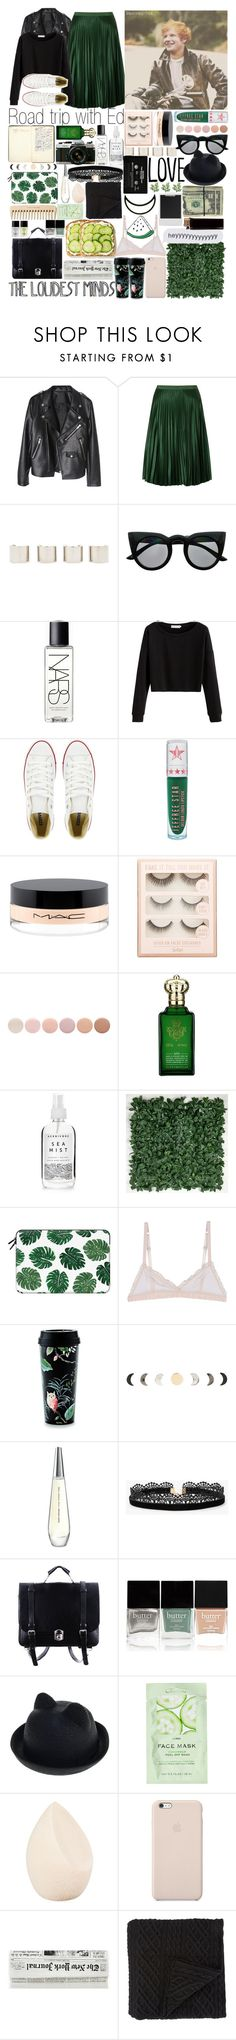 """it is the only thing that makes us feel alive"" by diana-volonciu ❤ liked on Polyvore featuring Maison Scotch, Luv Aj, Retrò, NARS Cosmetics, Converse, Nikon, Jeffree Star, MAC Cosmetics, Deborah Lippmann and Clive Christian"